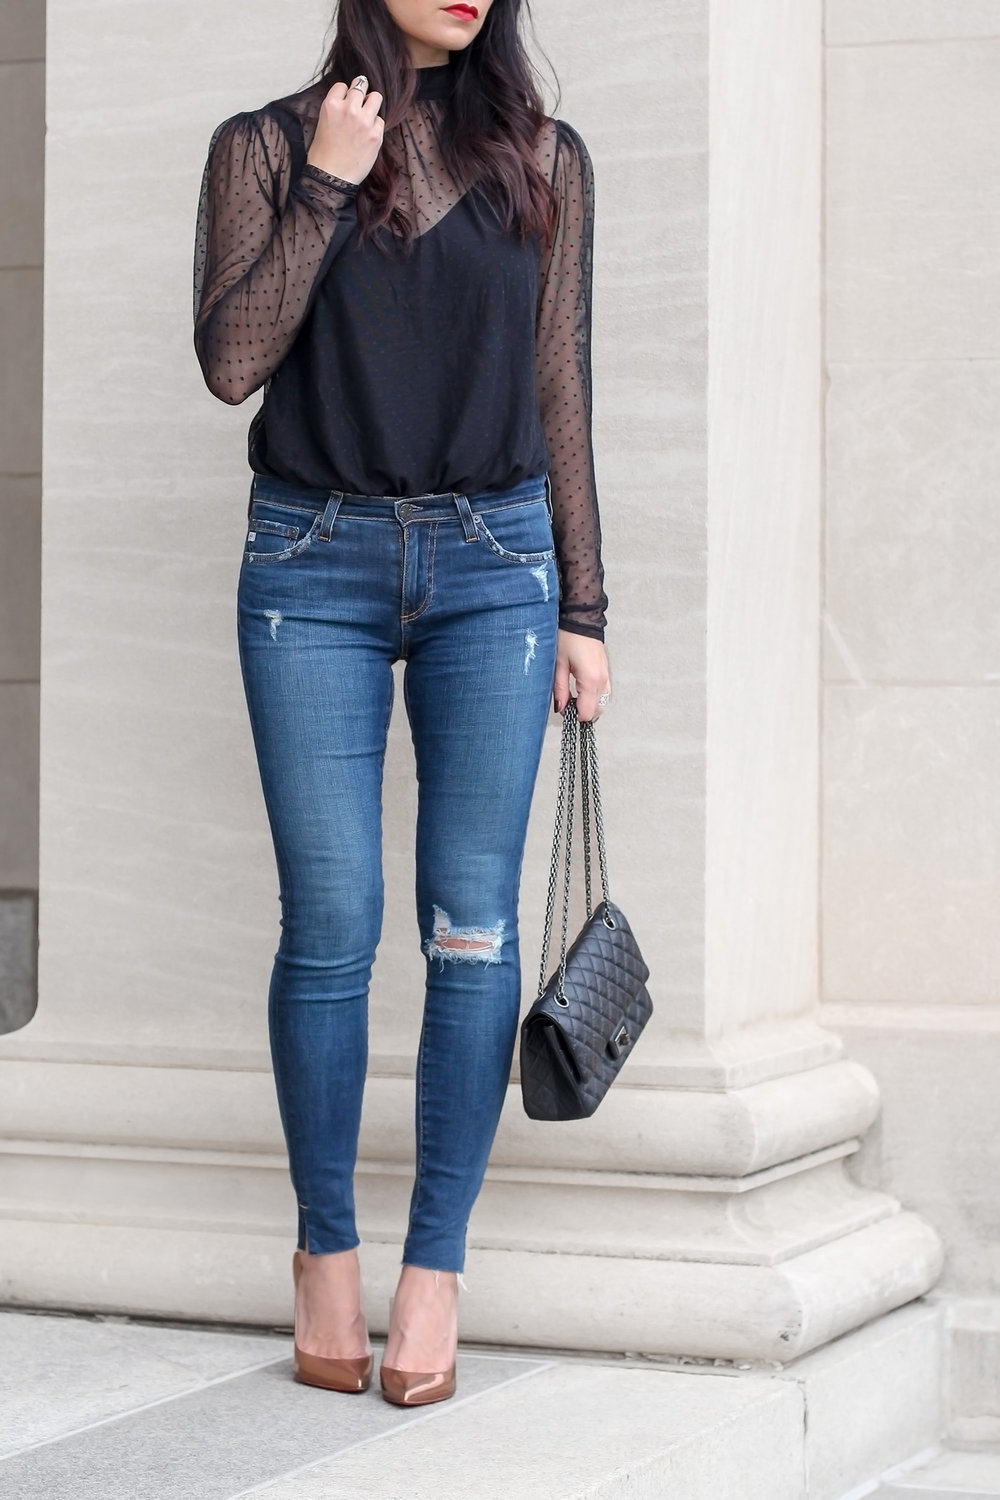 Date Night Outfit, Lace Body Suit Look